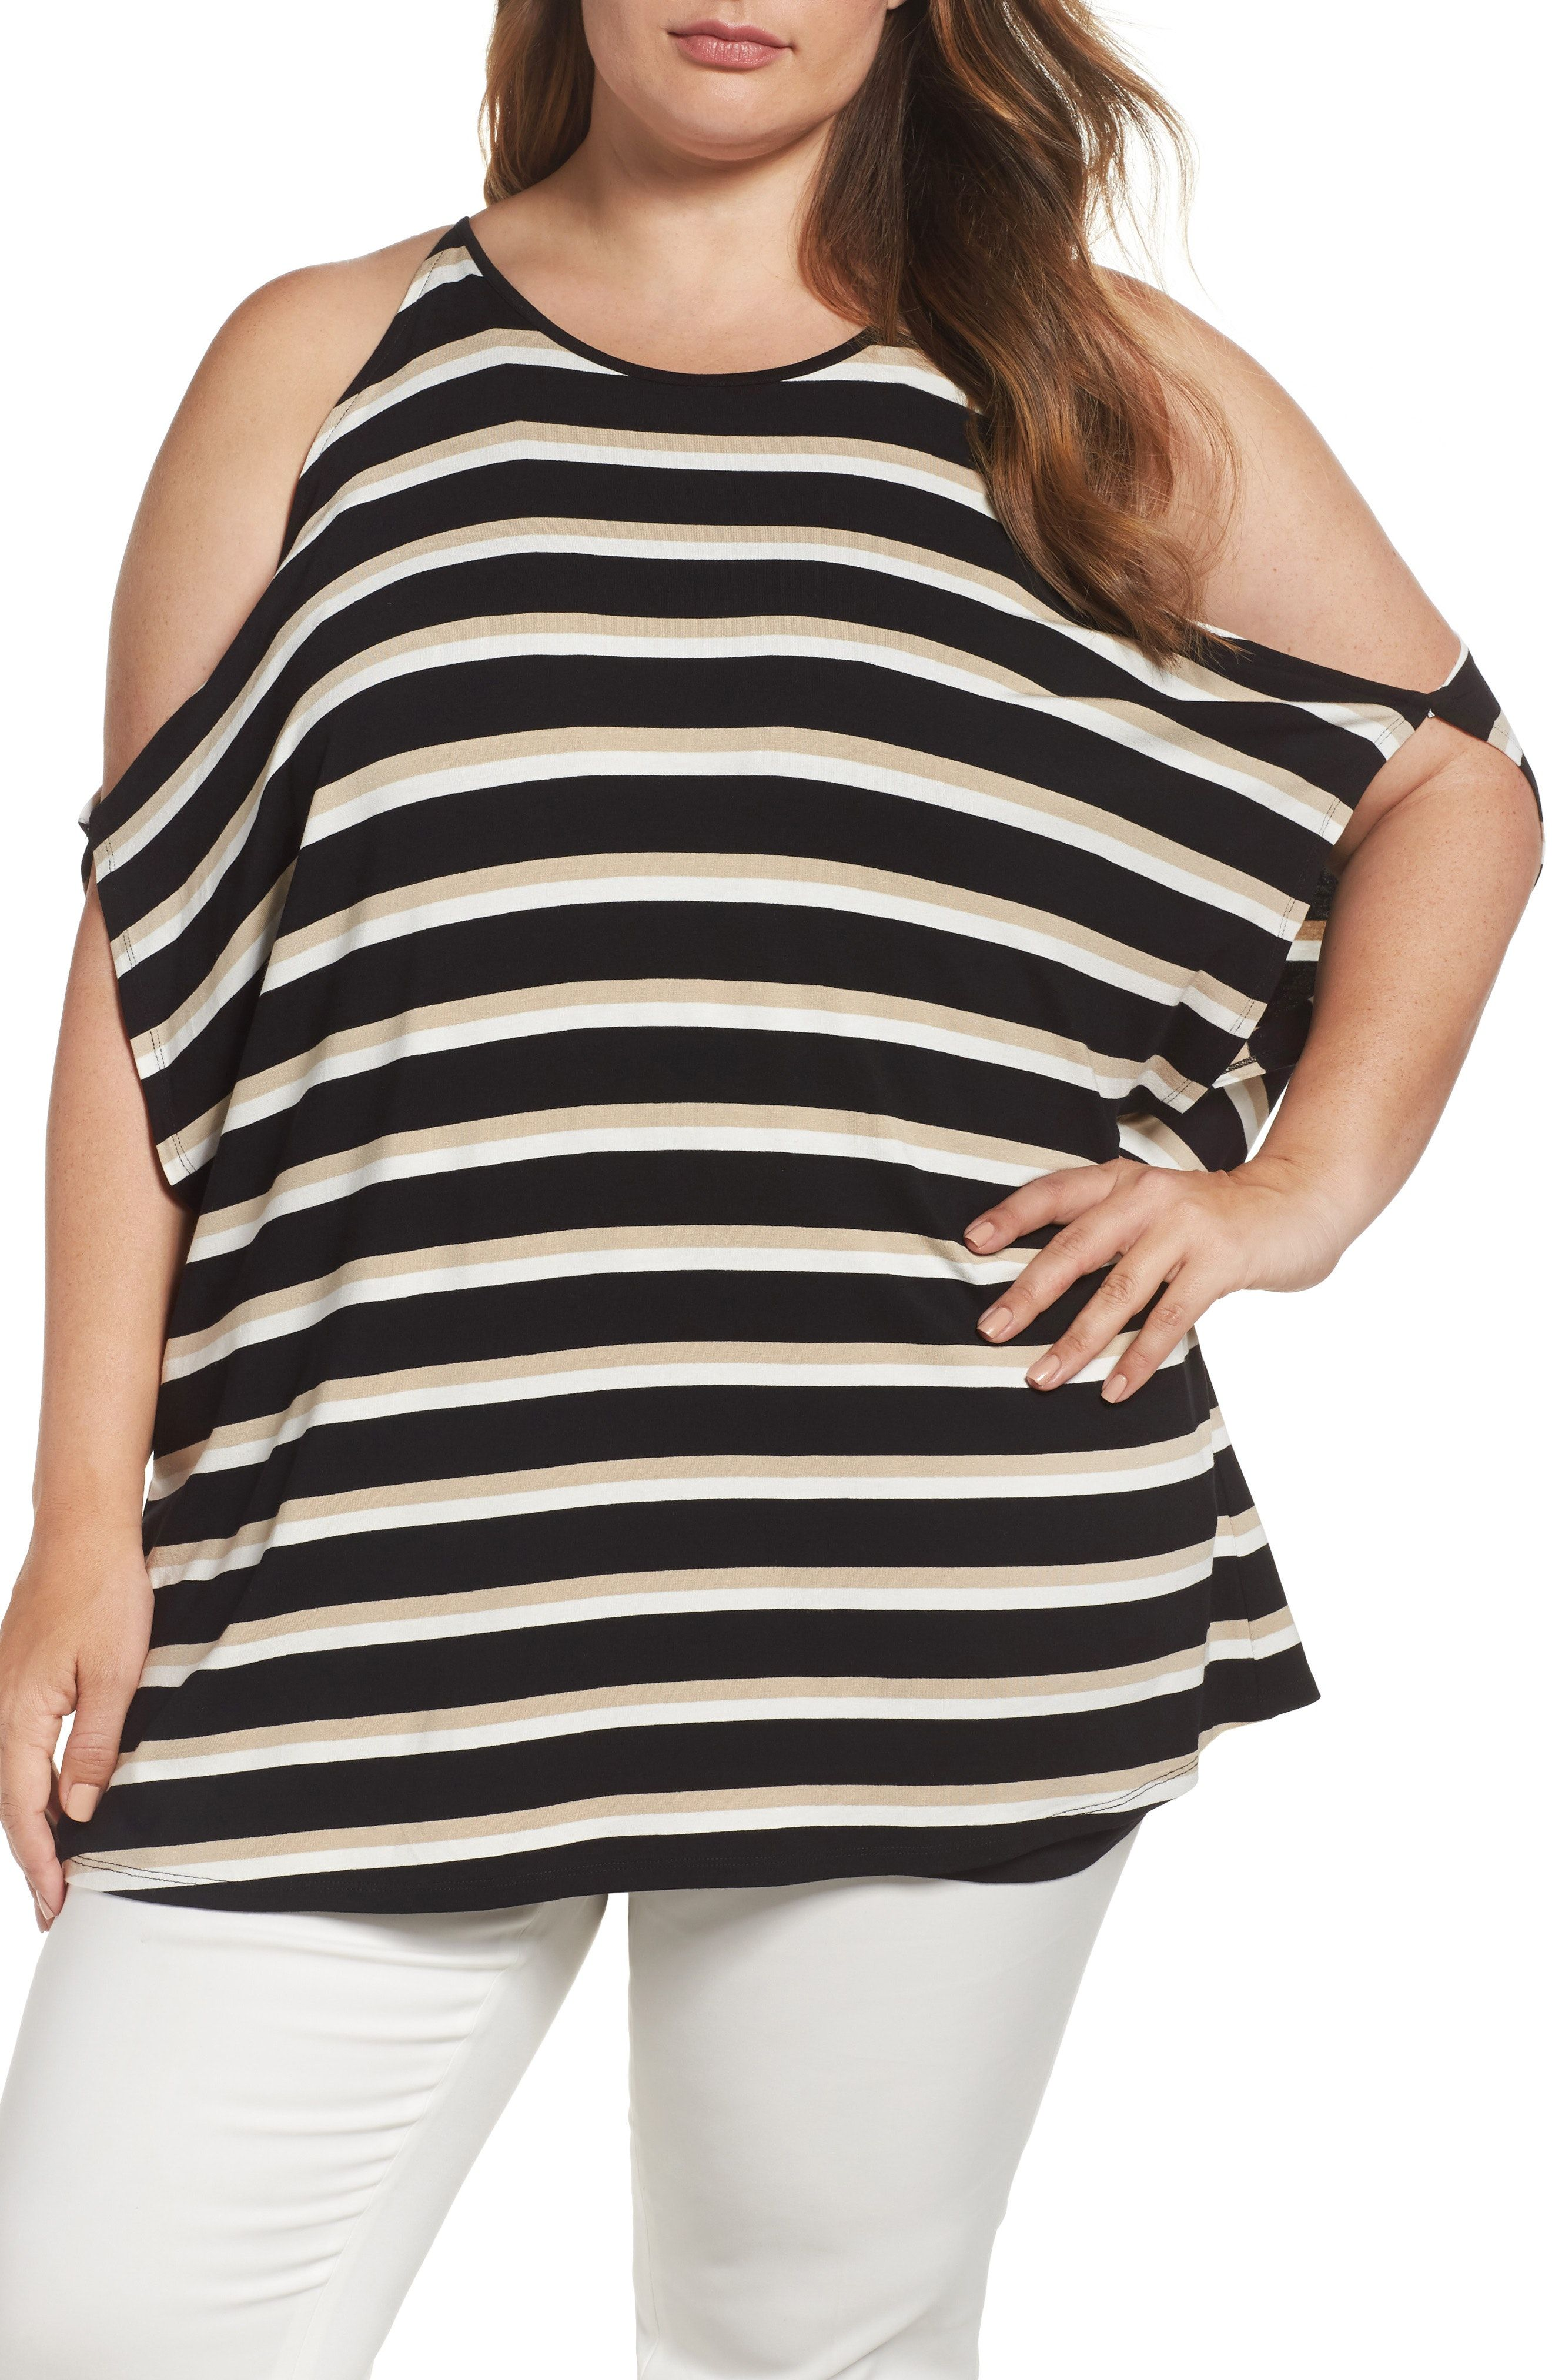 00fcda3dfa6cc New Vince Camuto Desert Stripe Cold Shoulder Top (Plus Size) H PINK fashion  online.   89  new offer from Thenewoffer